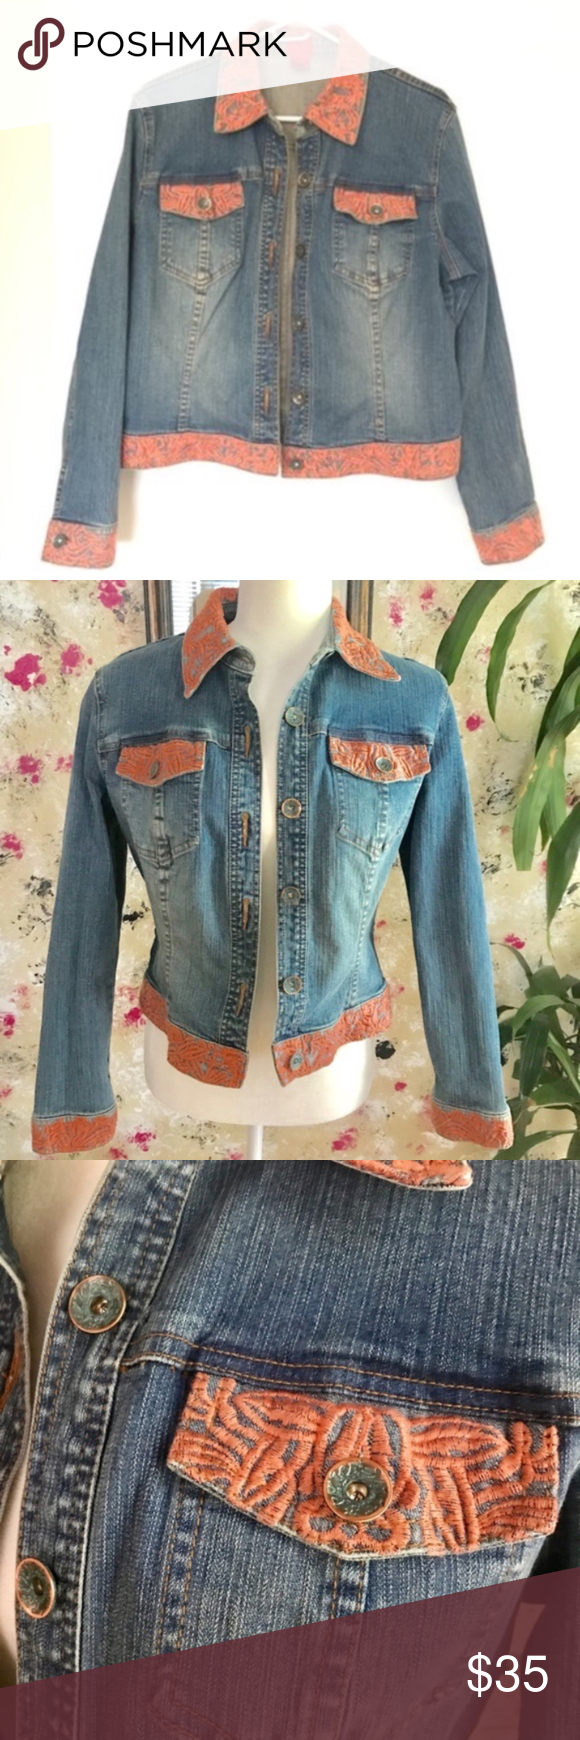 Very Vera Jean Jacket Size Small Blue Embroidery Very Vera Jean Jacket With Embroidered Details Nice Weight To The Den Versatile Denim Blue Embroidery Jackets [ 1740 x 580 Pixel ]